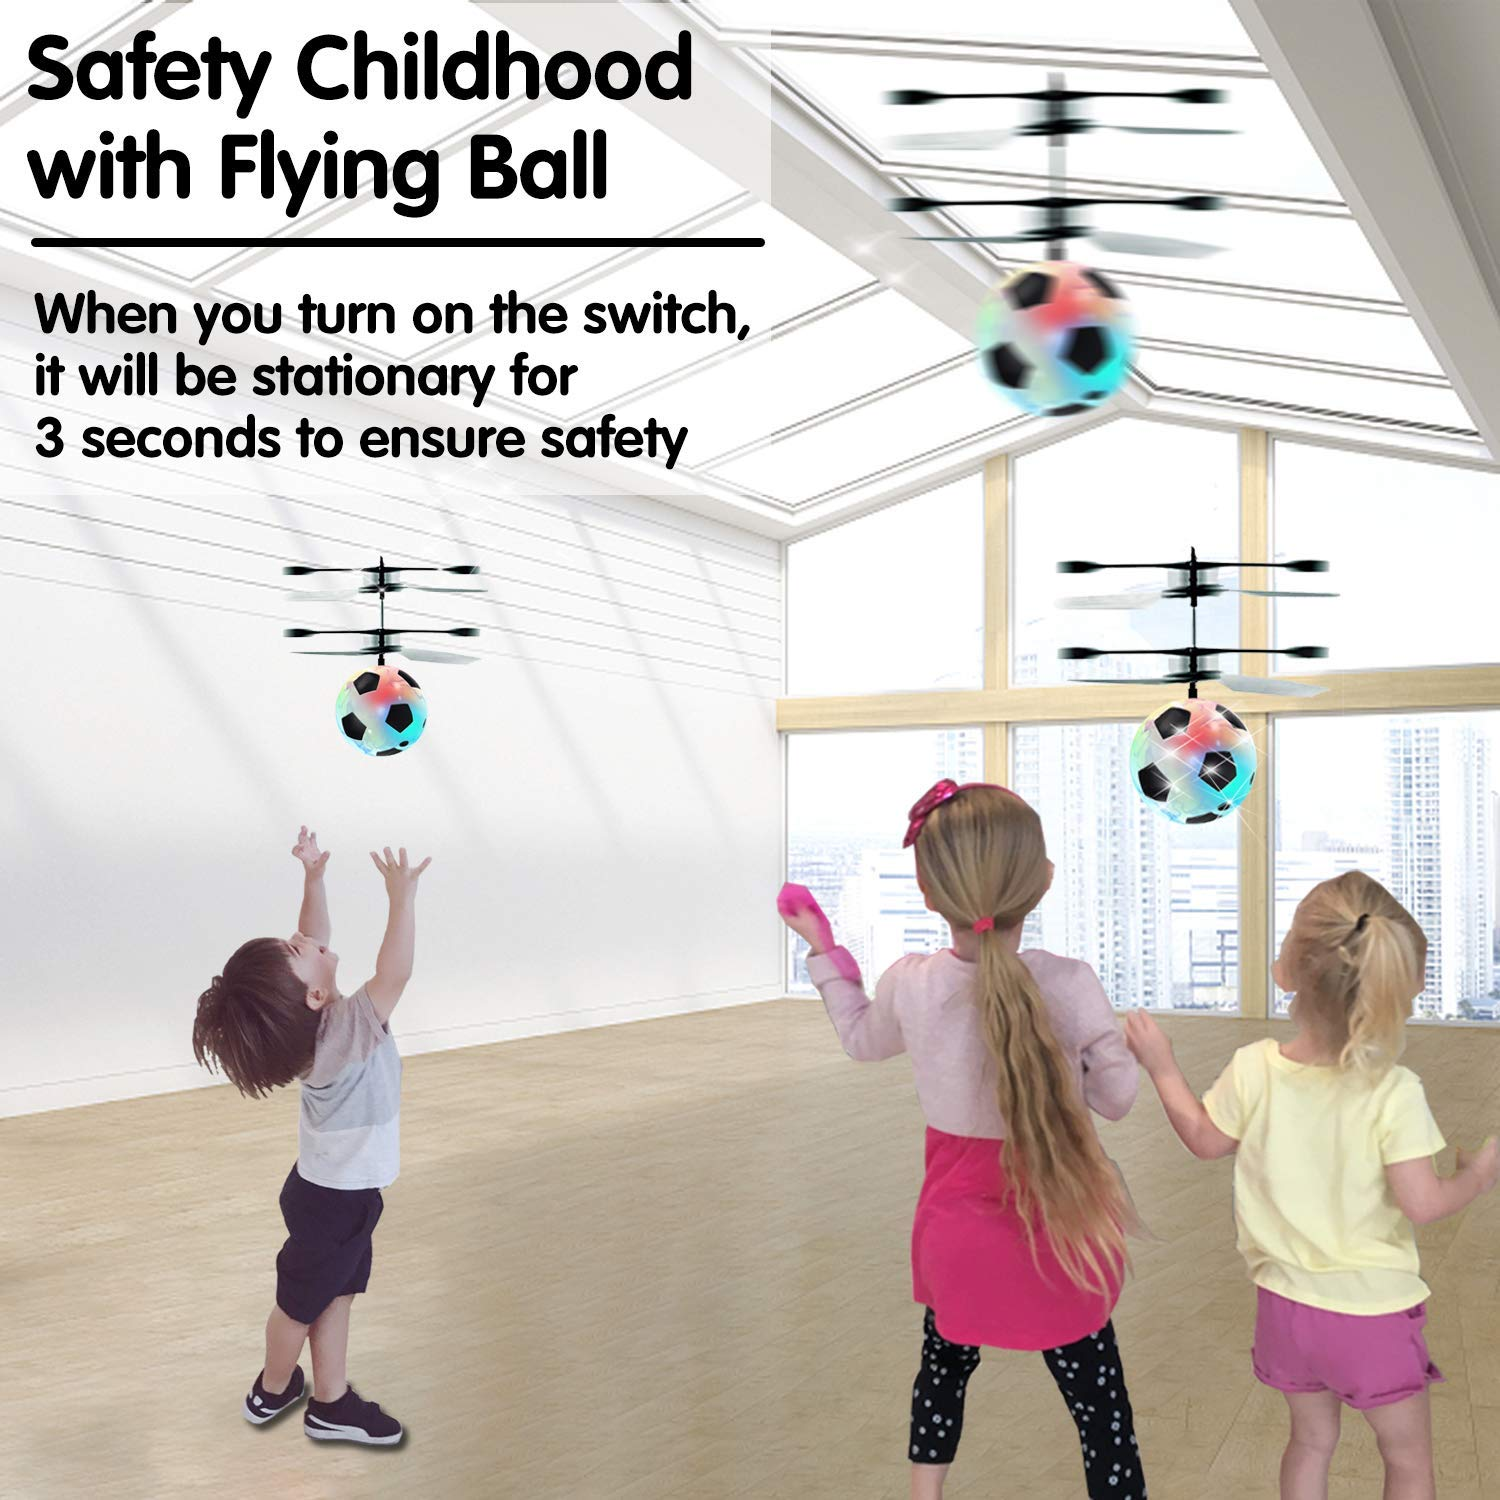 Flying Ball Drone, Kids Flying Toys Boys Girls Light Up Ball Drone RC Infrared Induction Helicopter with Remote Controller UFO Aircraft Toys Games Toys for 1 2 3 4 5 6 7 8 9 10 Year Old Indoor Outdoor by AMENON (Image #5)